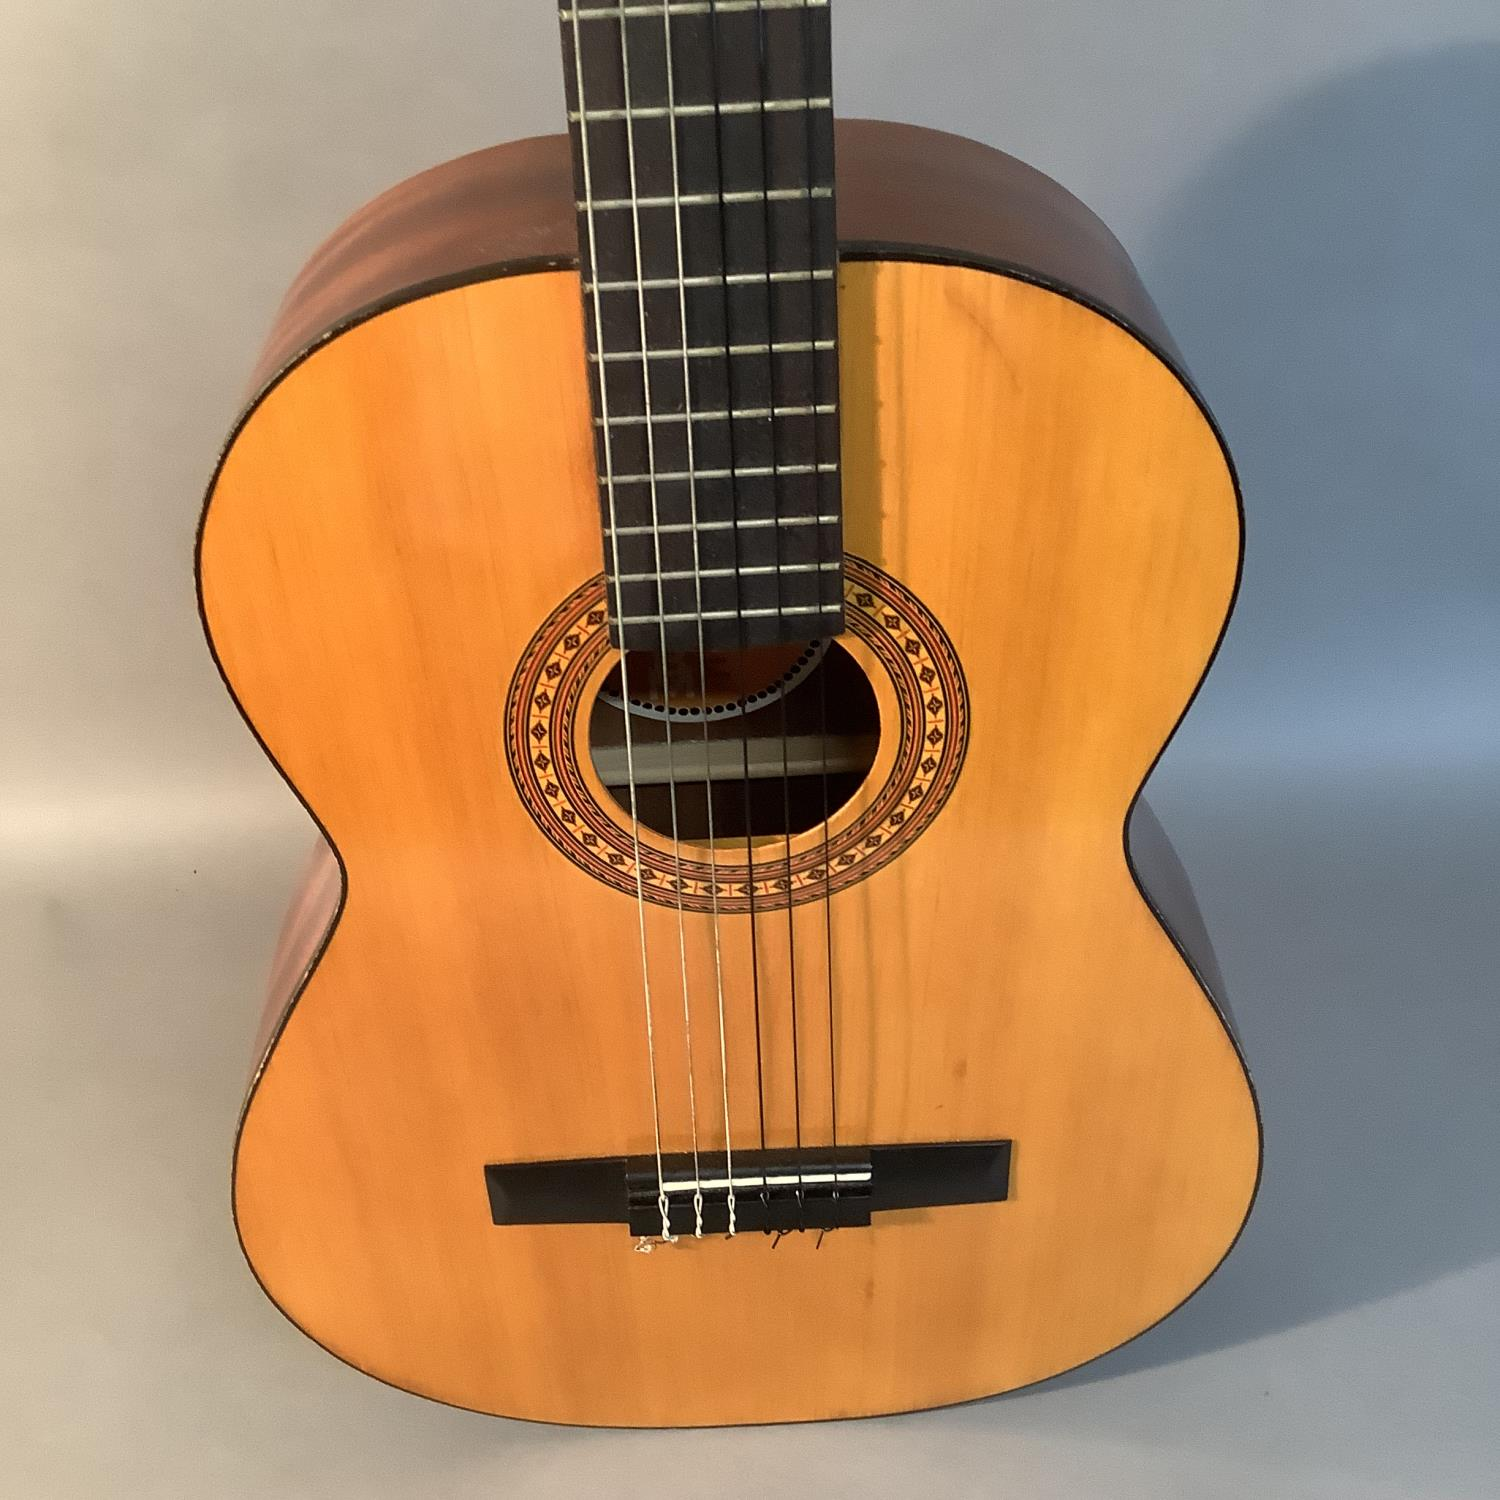 An Admira Almeria classical guitar with Oregon pine top and Sapelli back, ebonized finger plate - Image 5 of 6